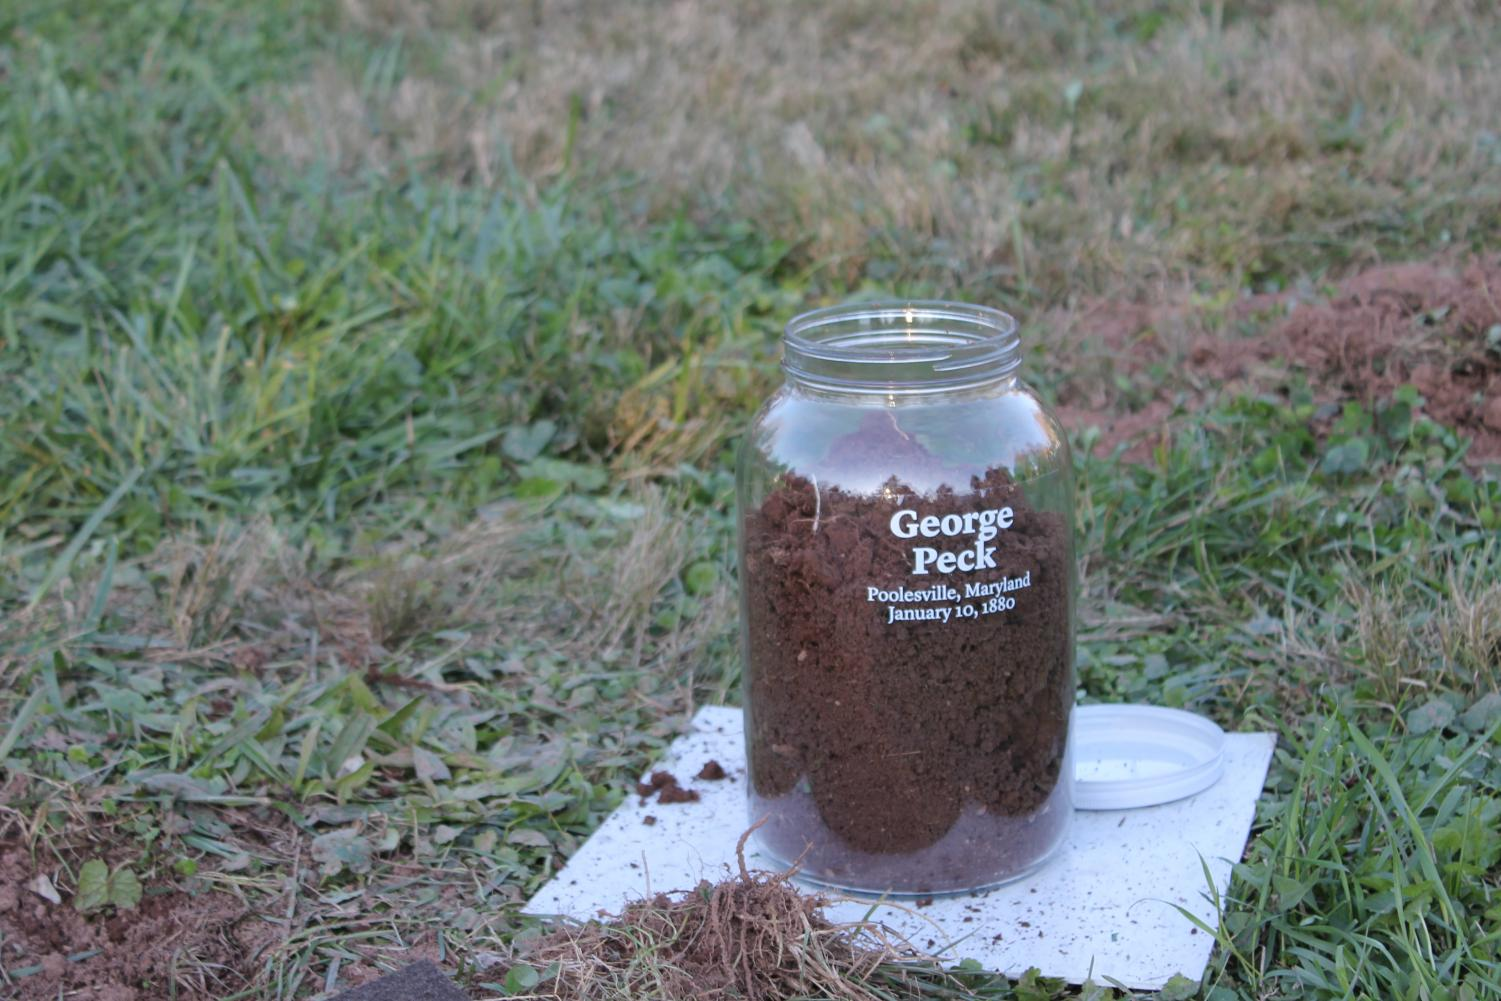 Soil collected from the site George Peck was lynched.